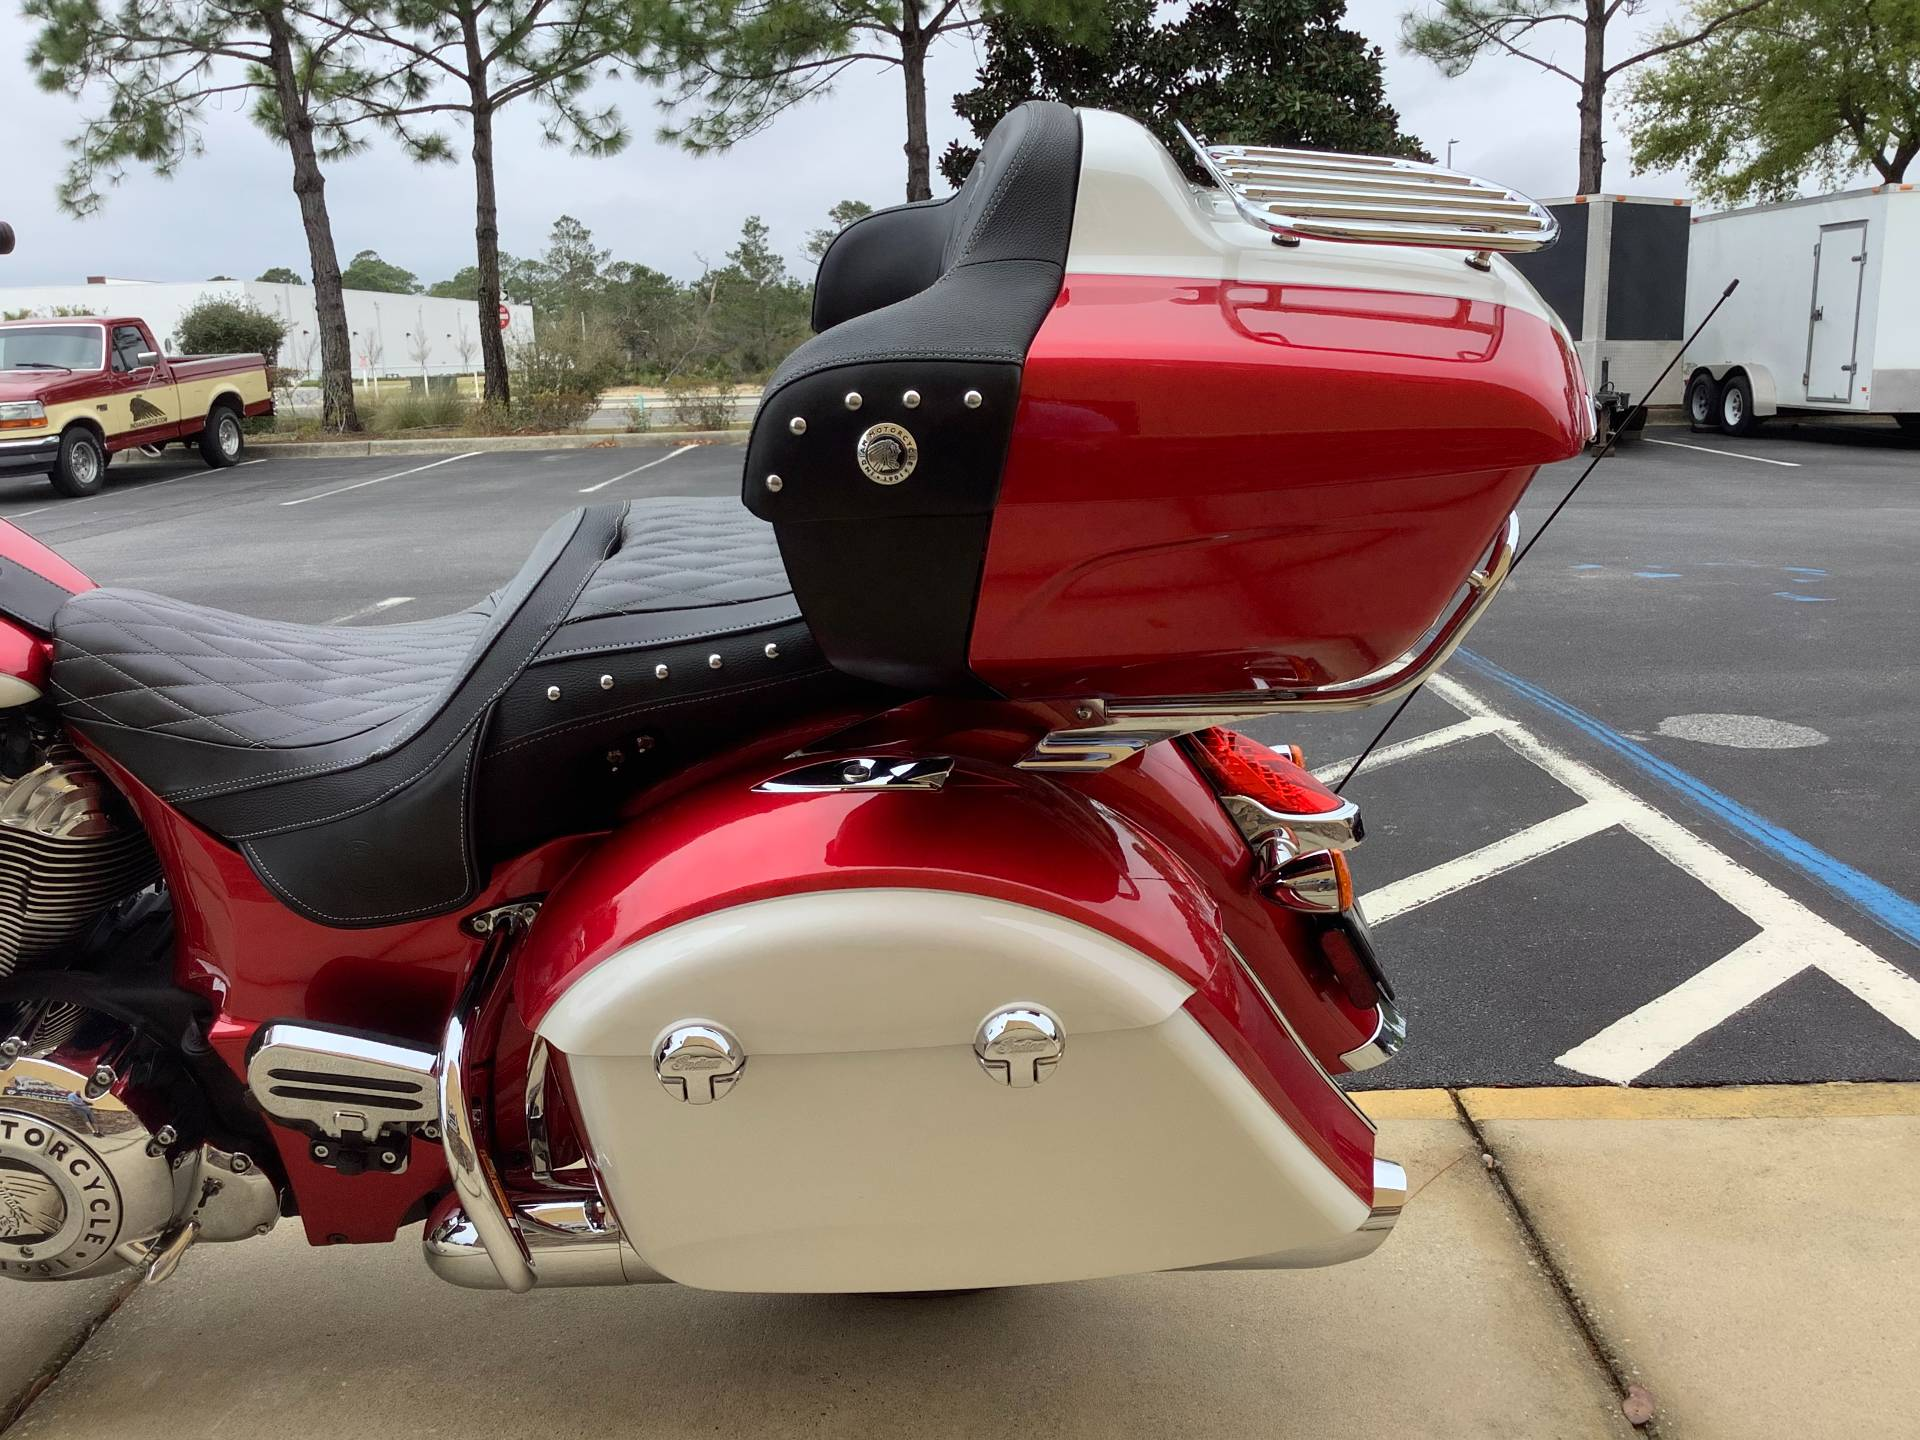 2019 Indian ROADMASTER ICON SERIES in Panama City Beach, Florida - Photo 11